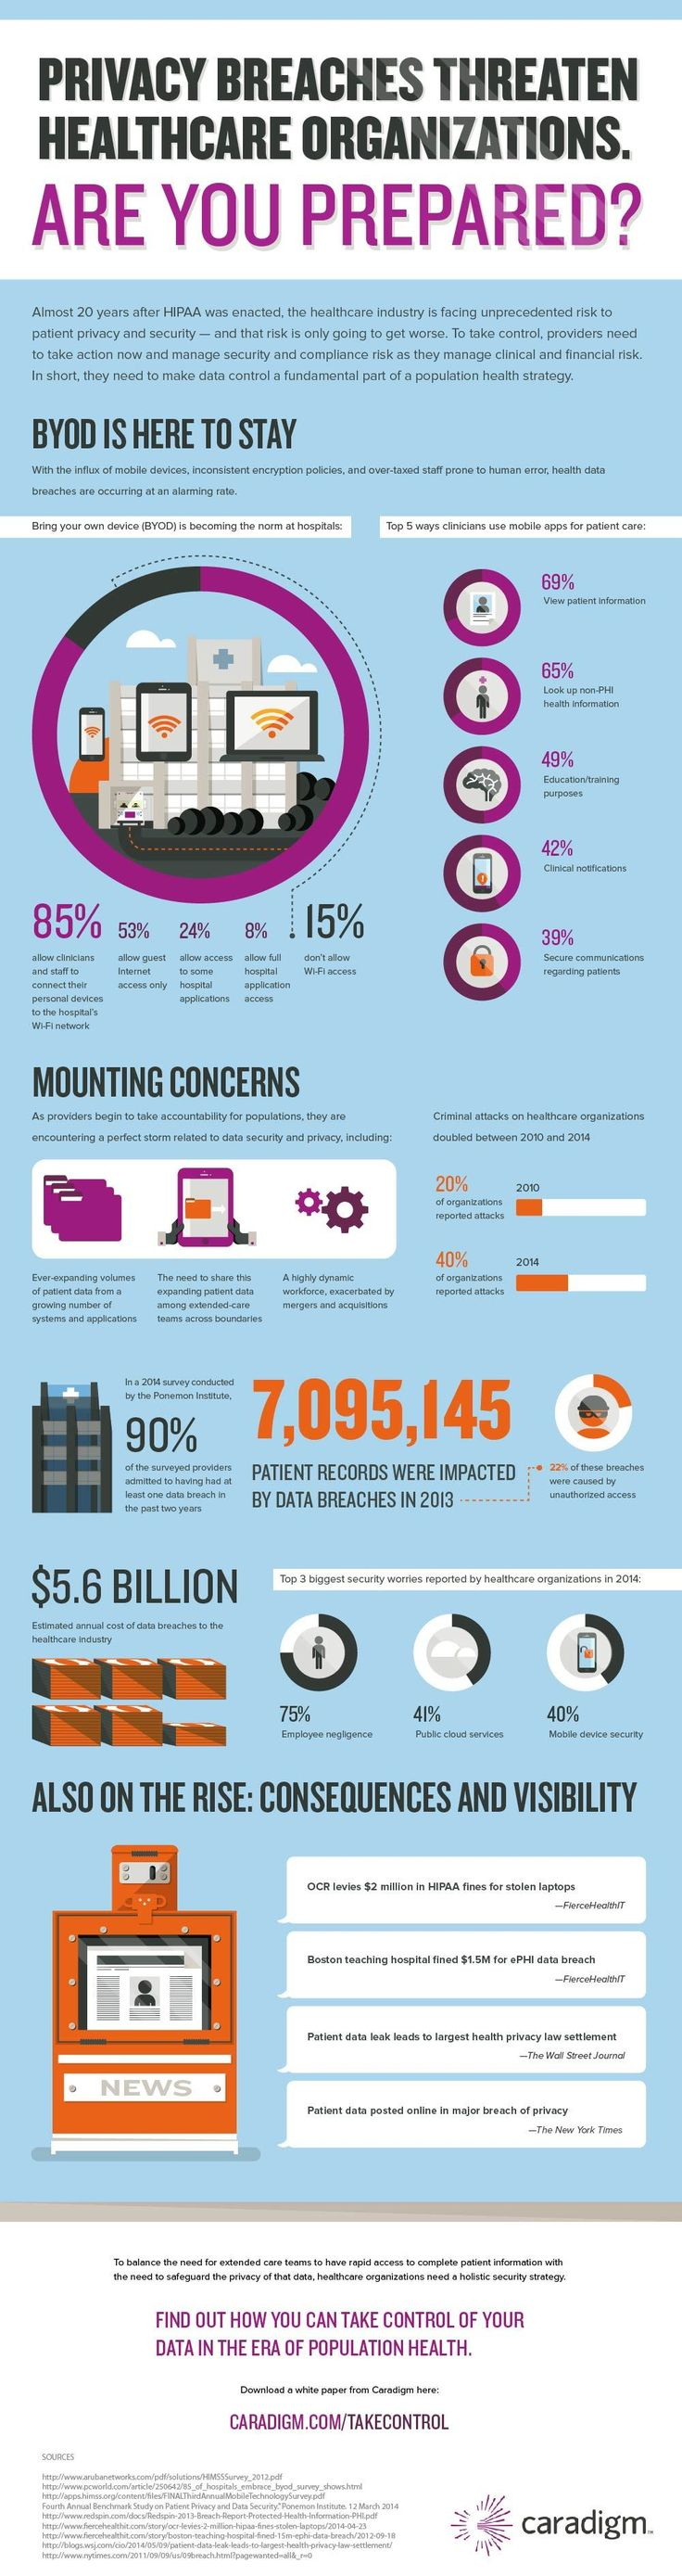 How Data Security Is Vital to Population Health Management (Infographic)